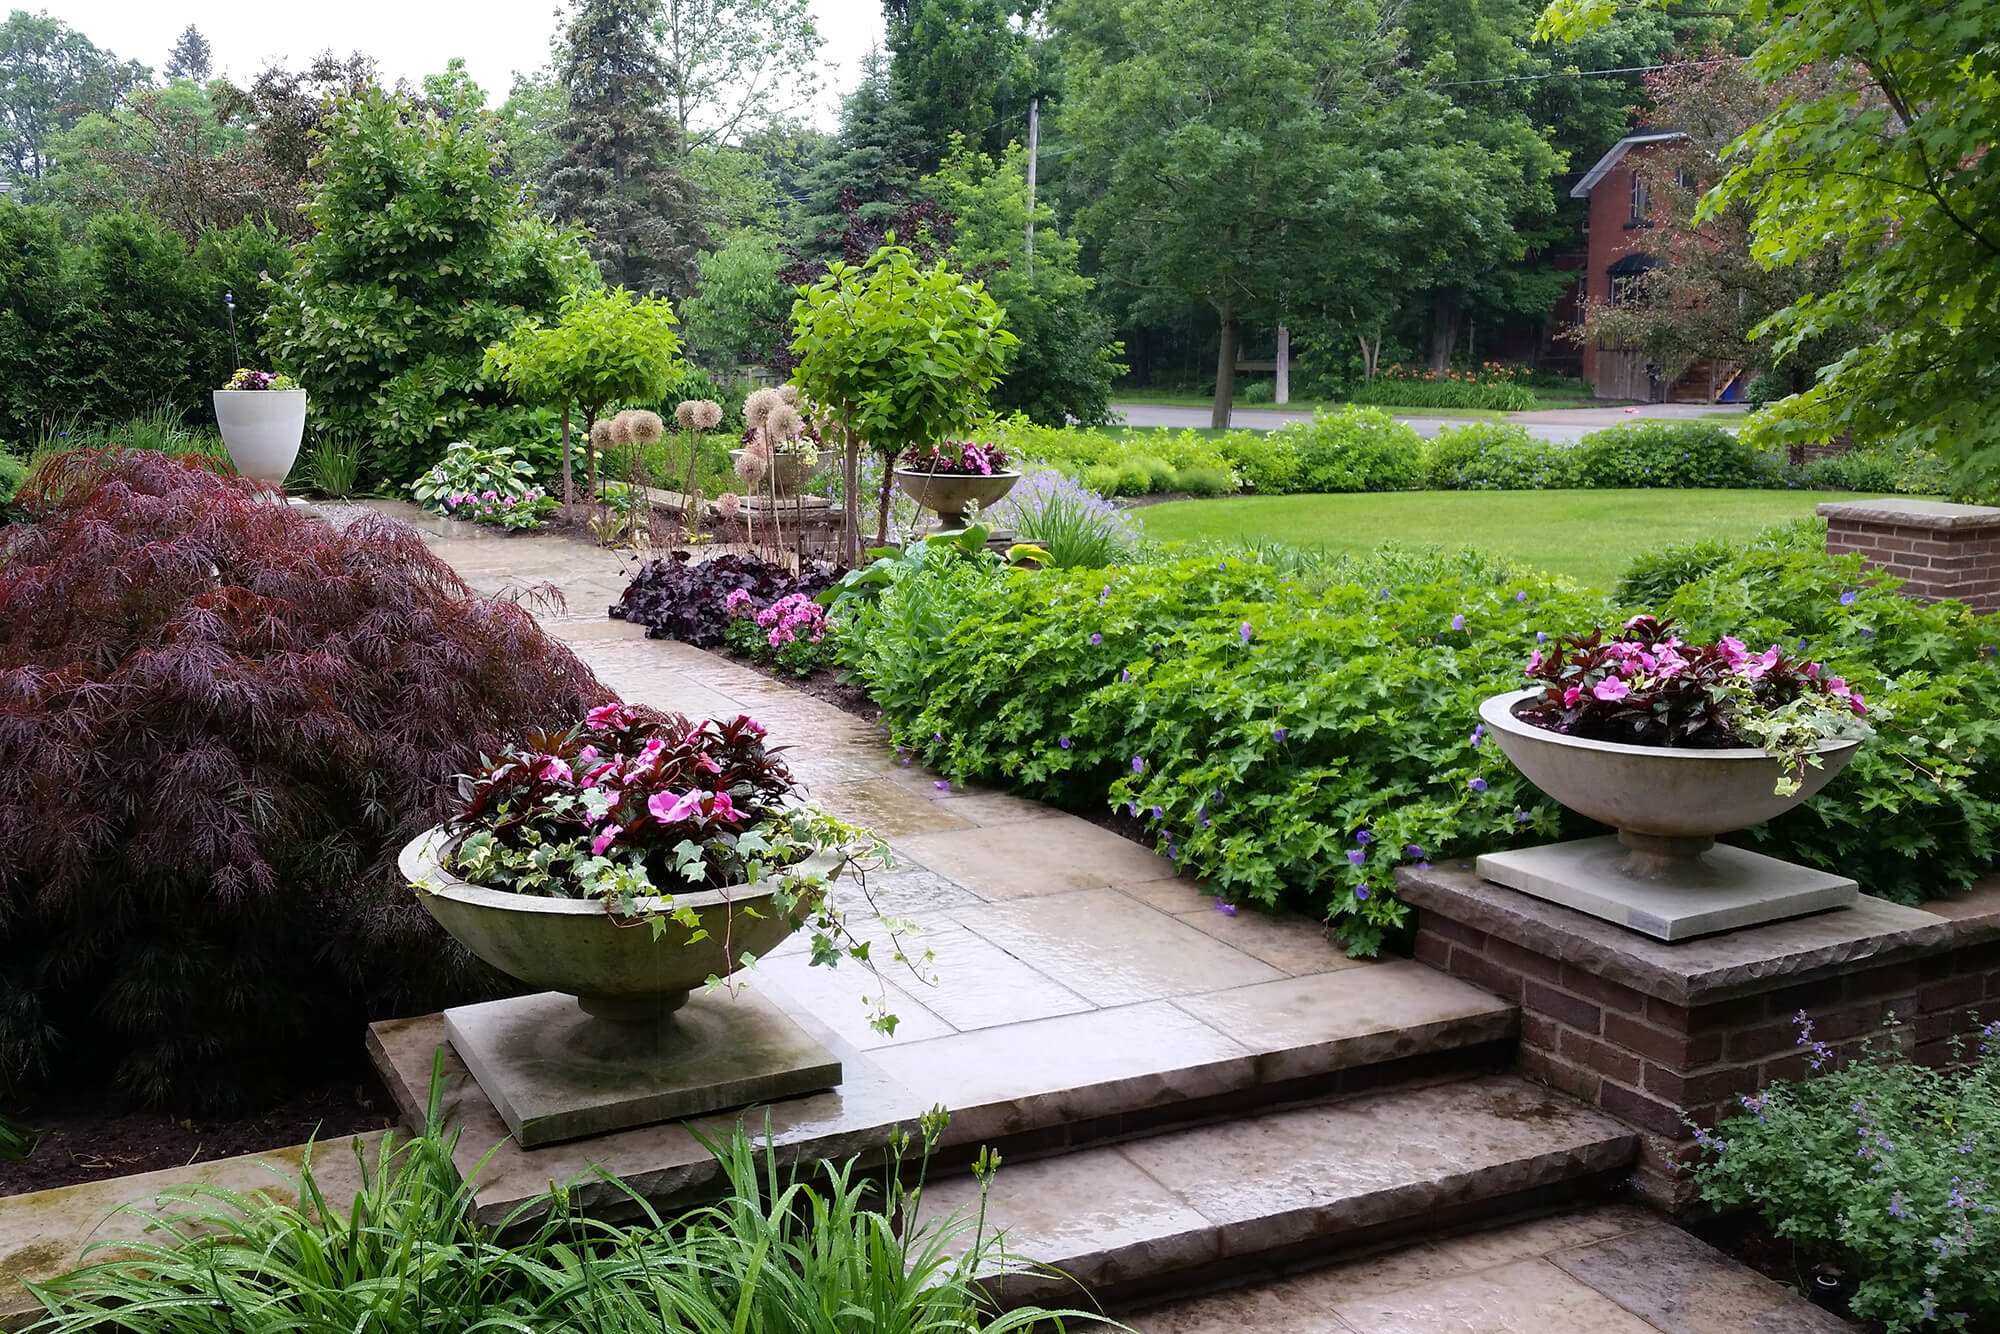 garden path with urns and plants